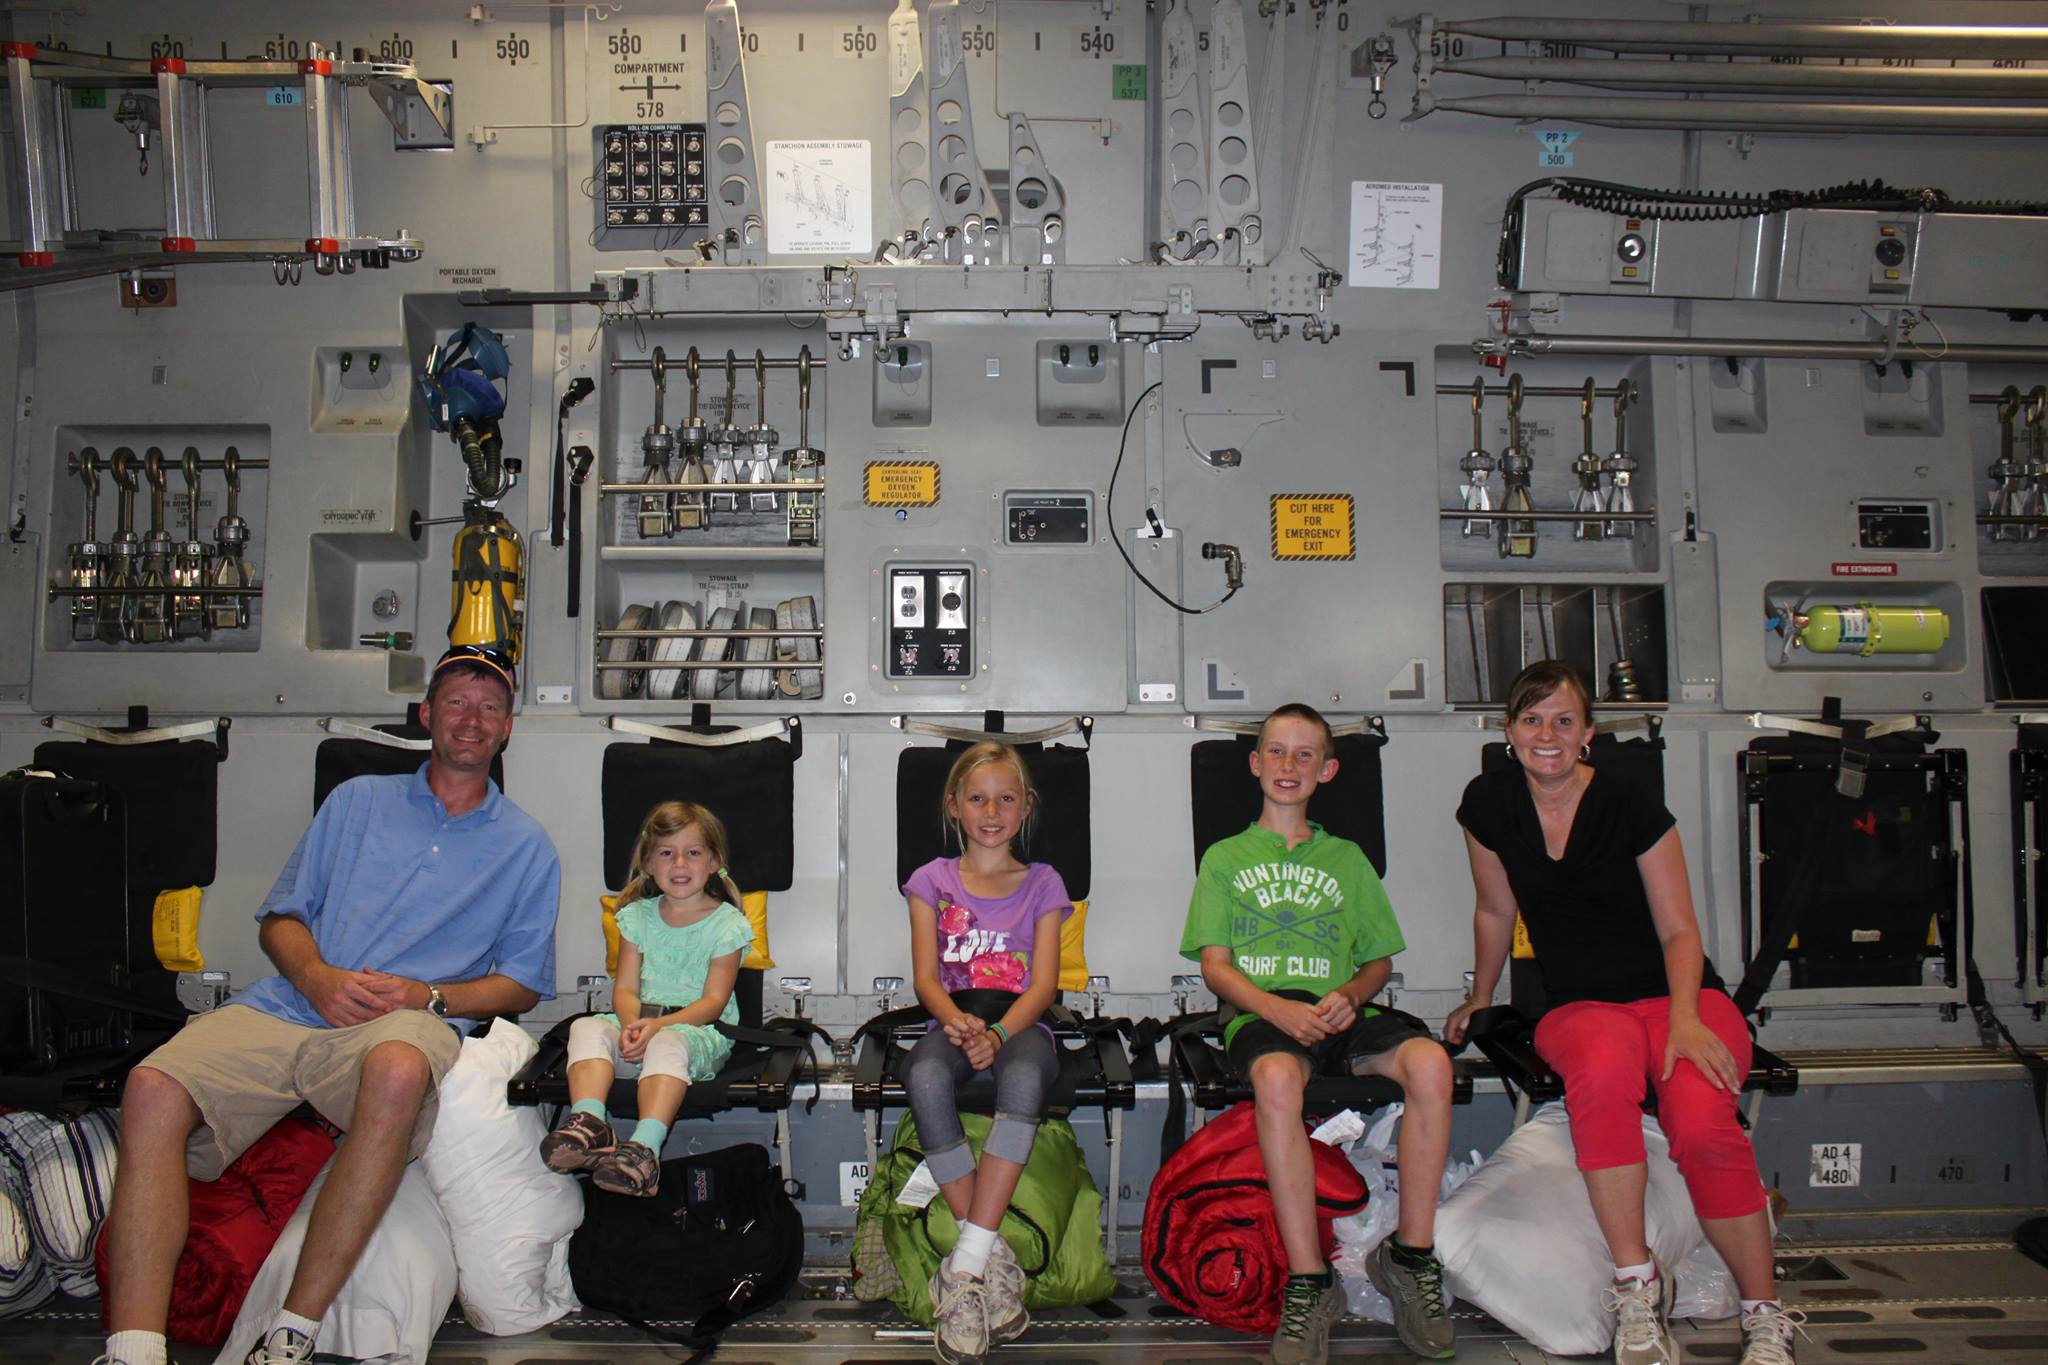 How does one qualify to travel Space-A on military flights?